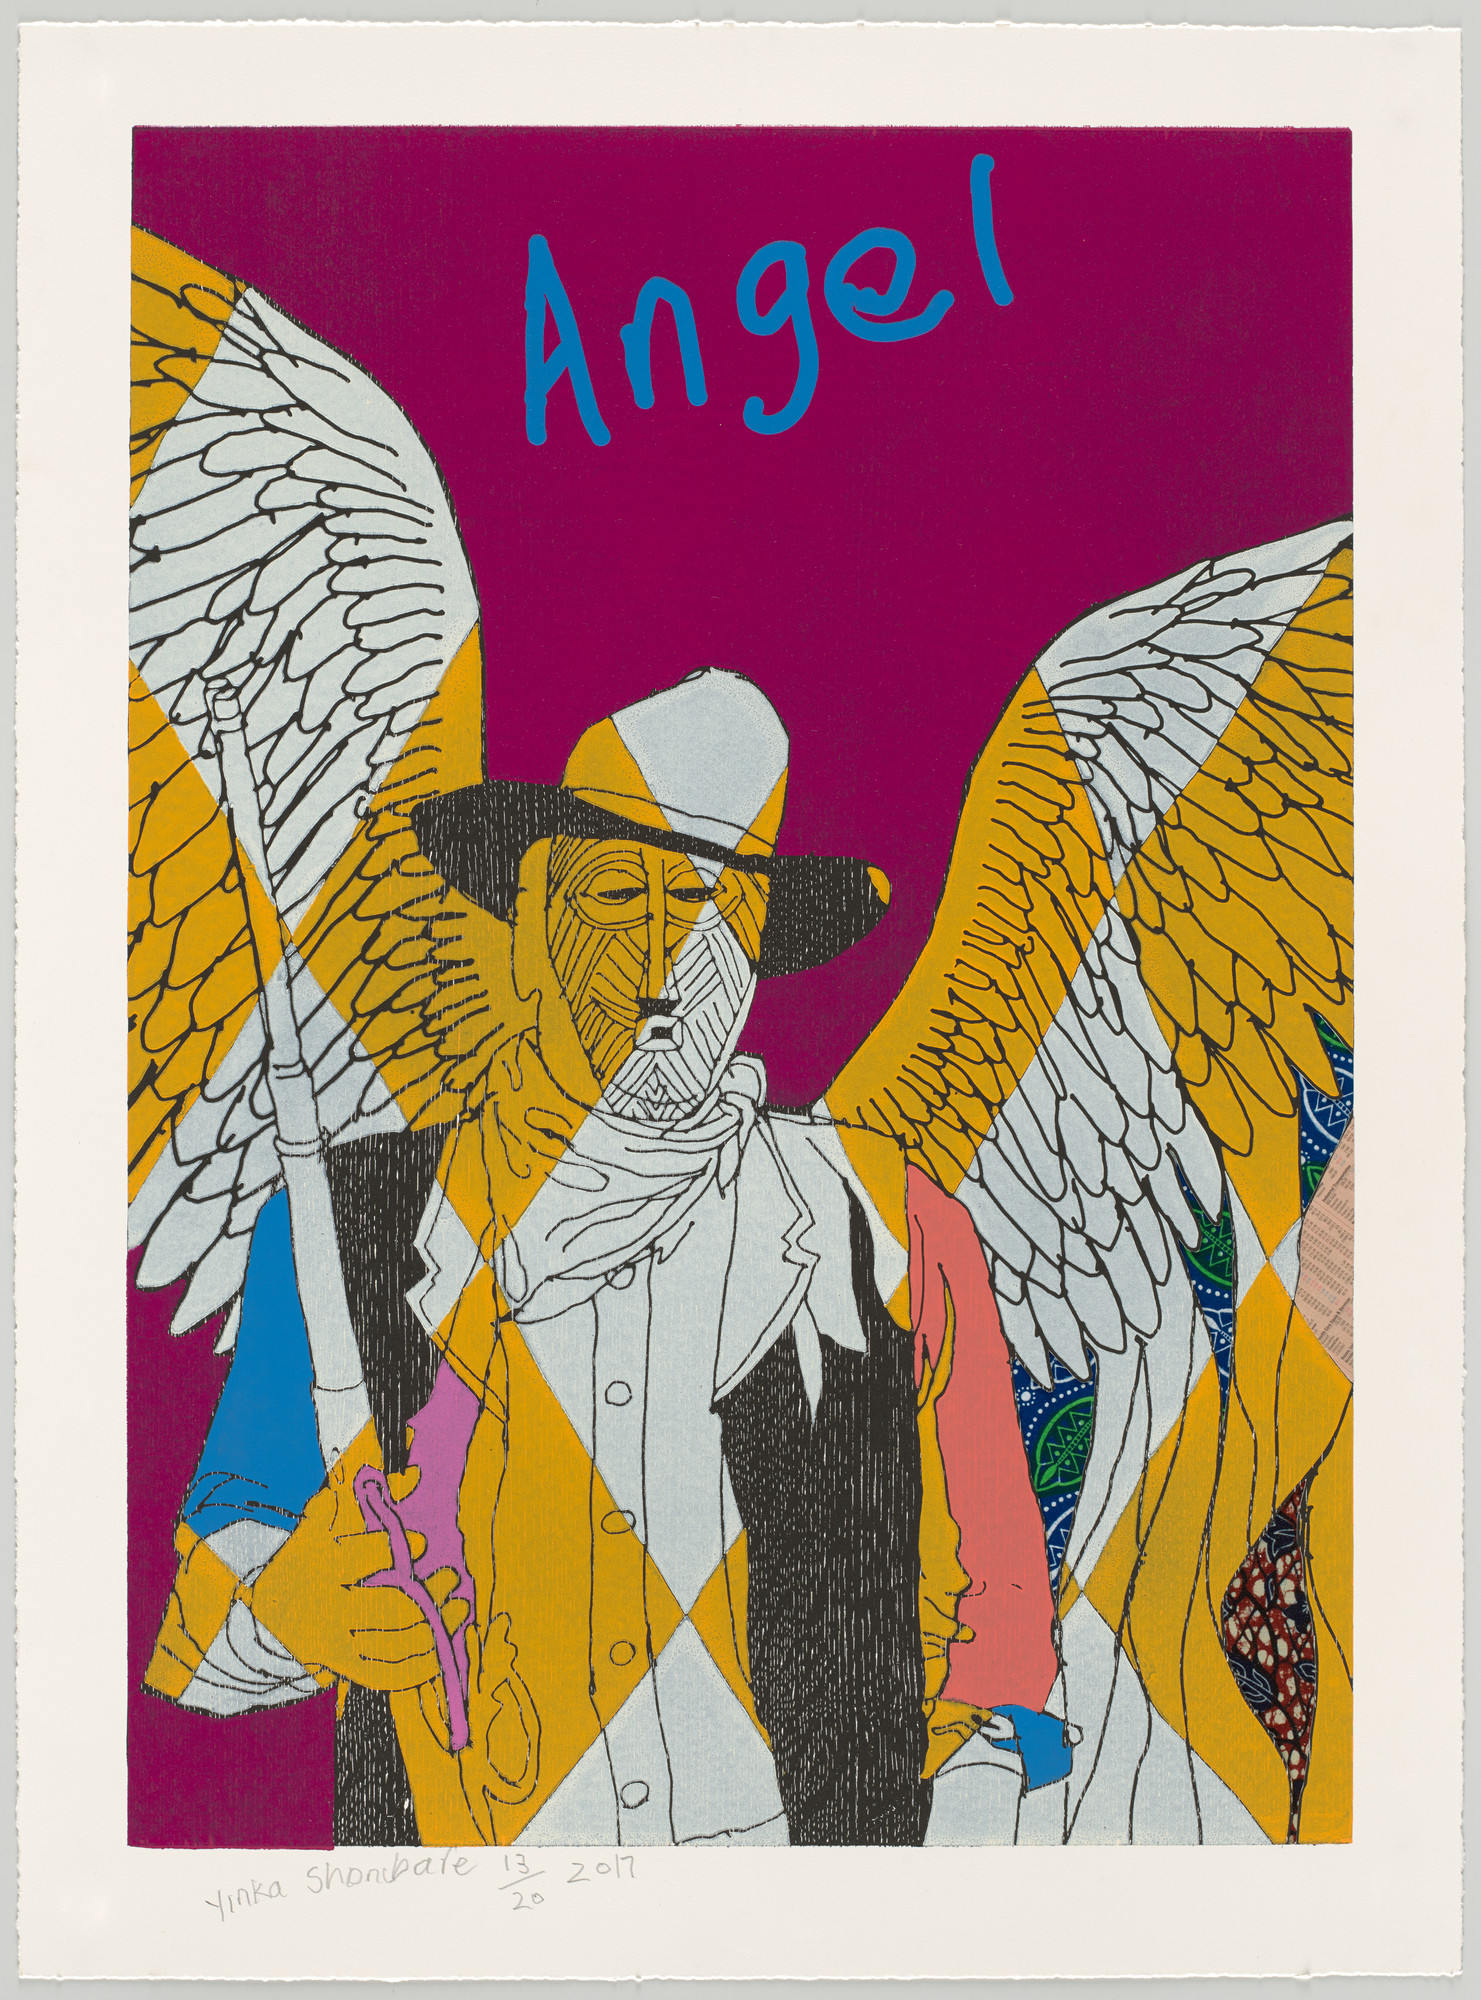 Yinka Shonibare. Cowboy Angels IV from Cowboy Angels. 2017